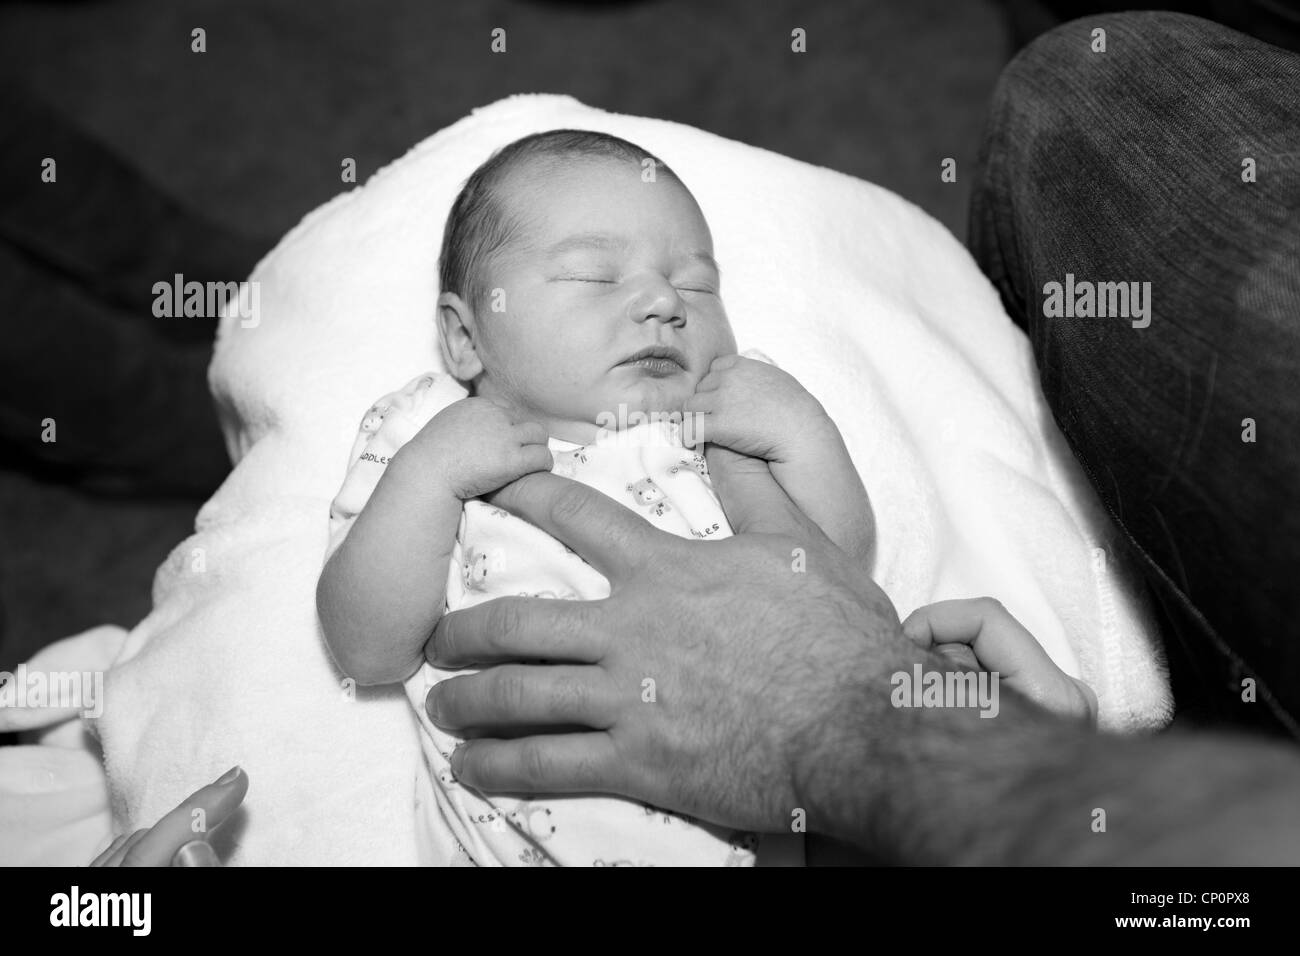 Baby in secure hands - Stock Image